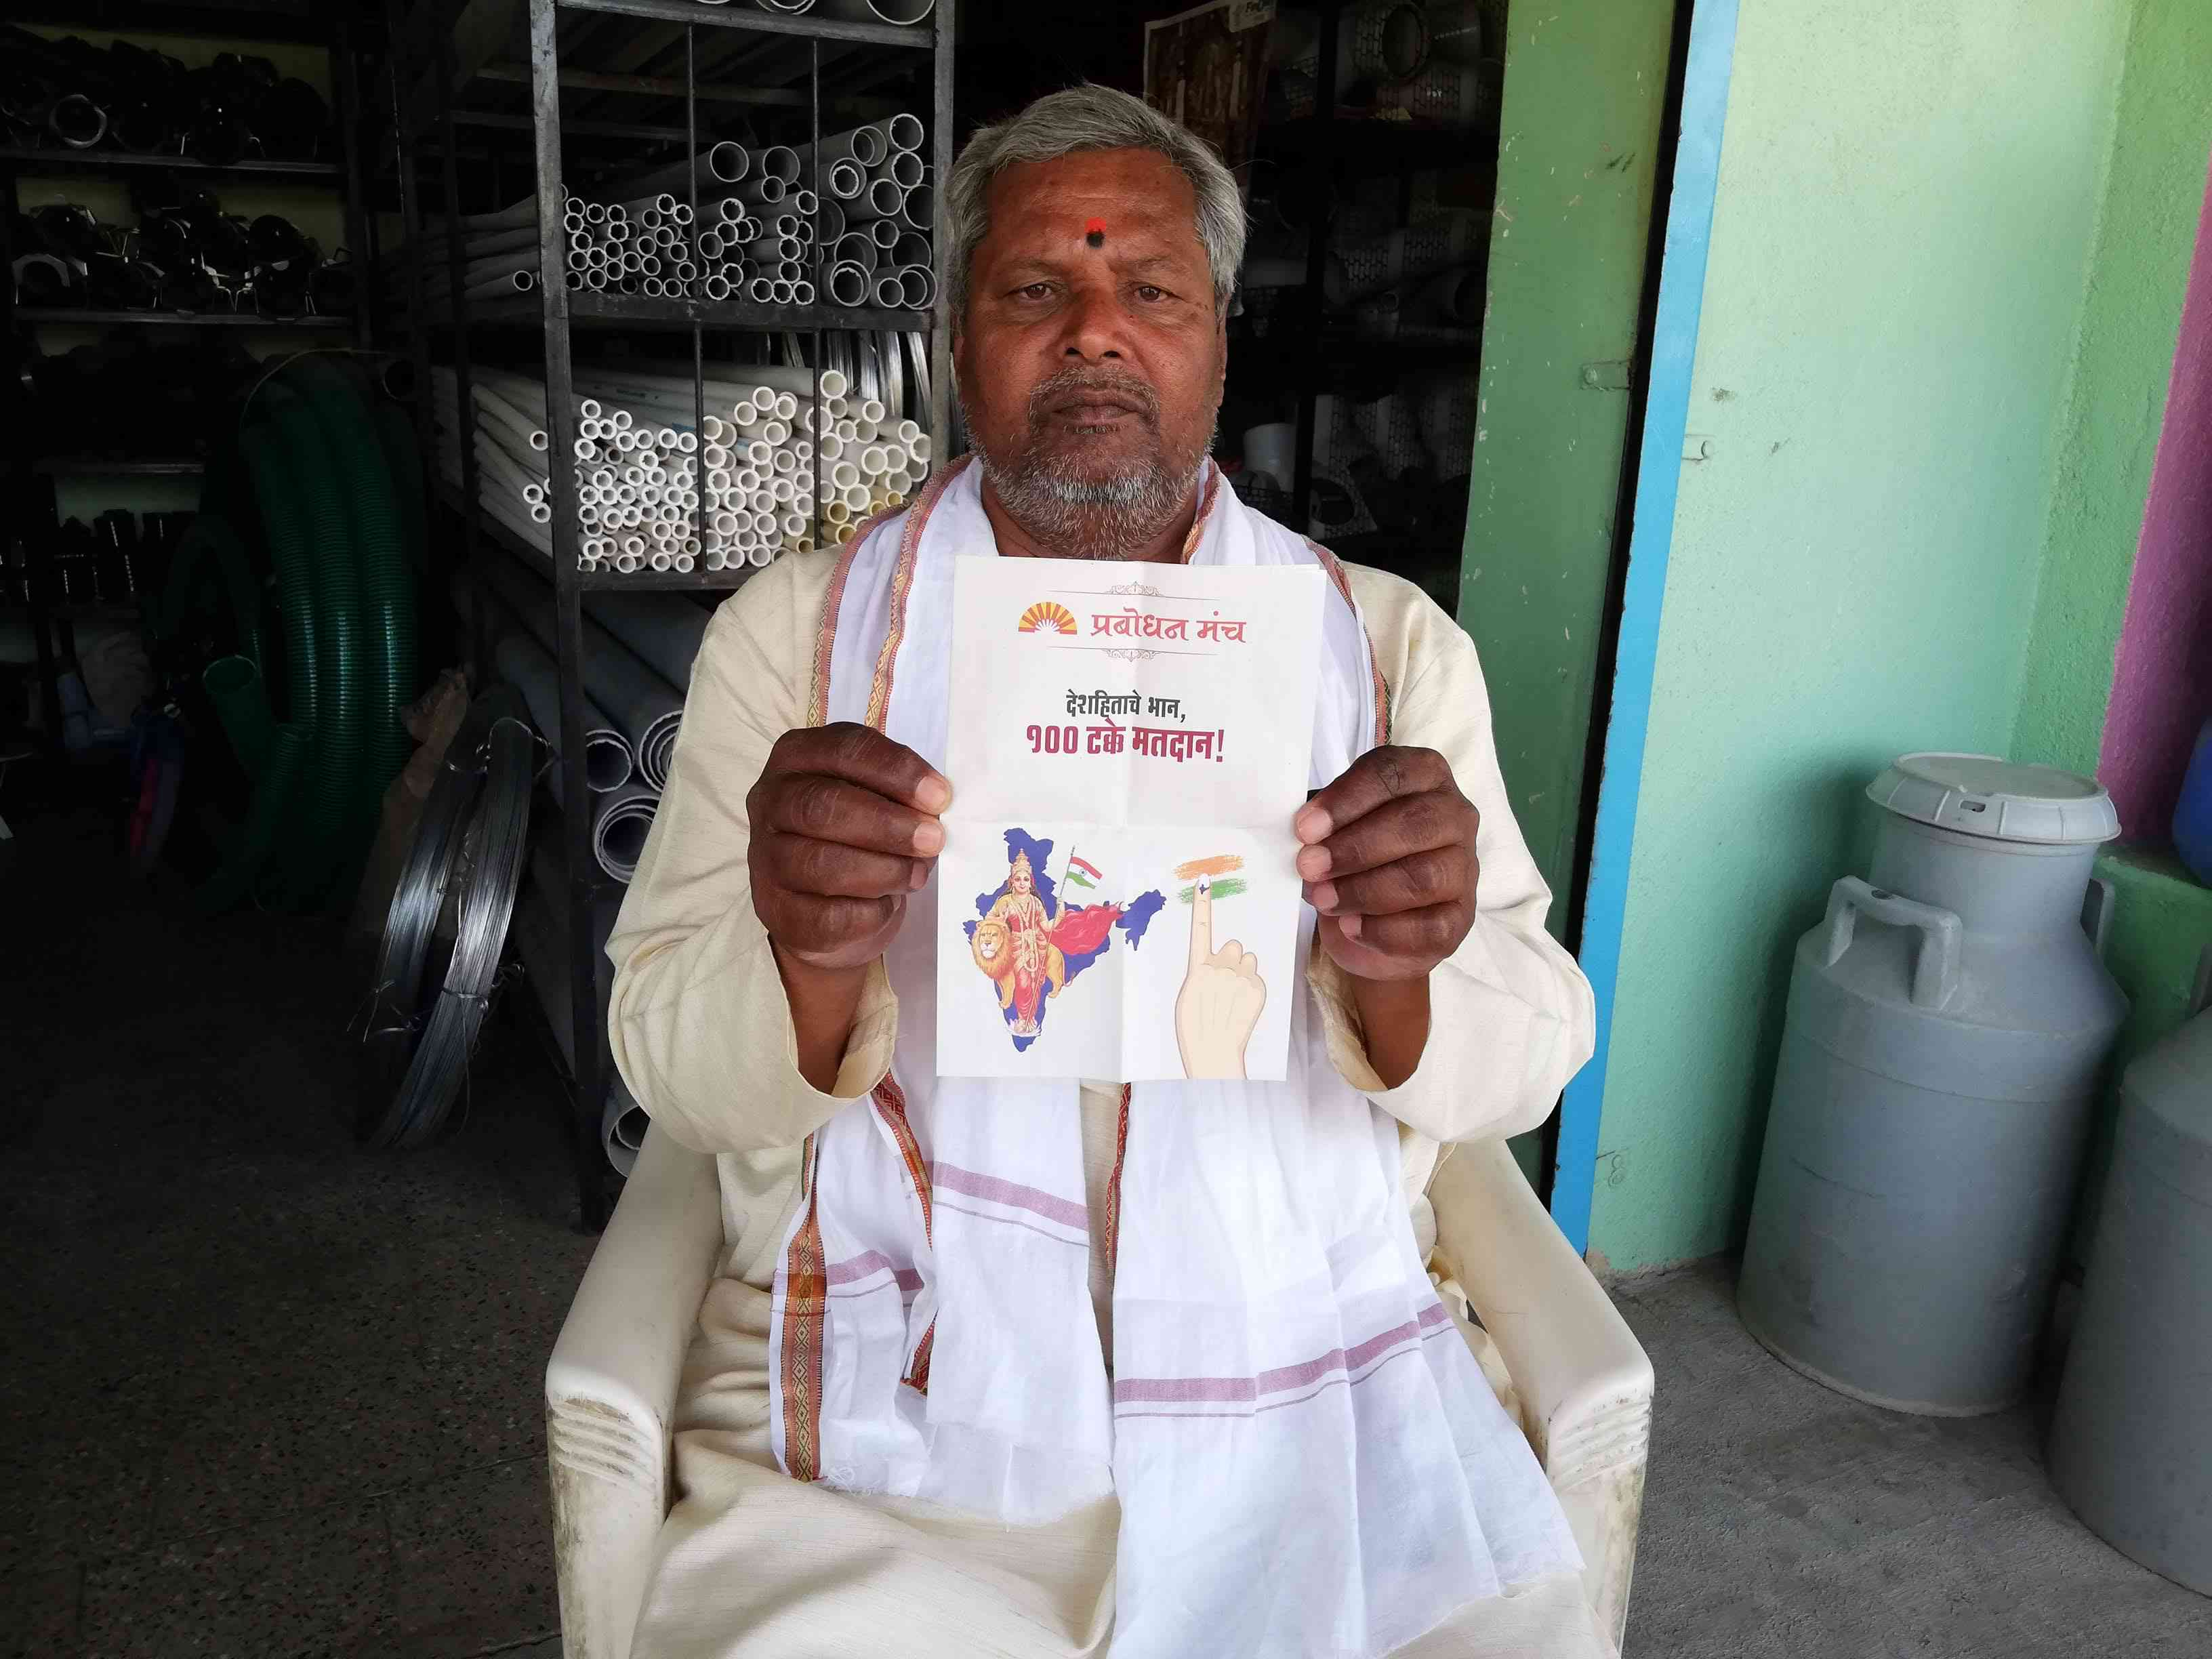 Pratap Wahade continues to canvass on behalf of the RSS, even after police under a BJP government detained him in jail for six days. (Photo credit: Mridula Chari).